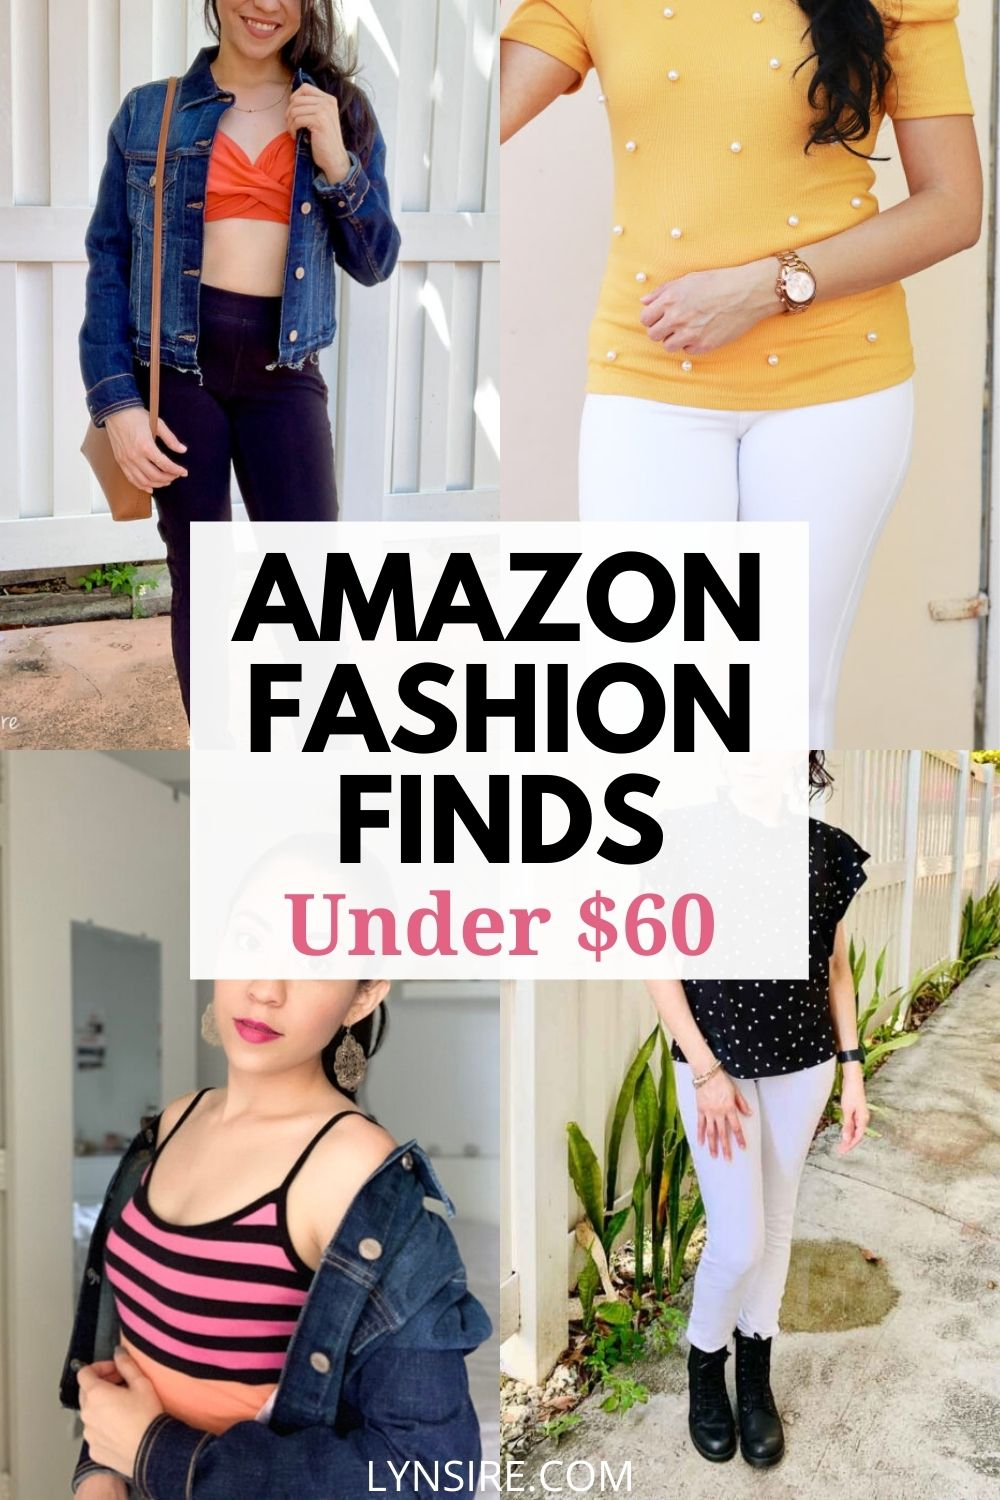 Amazon Fashion Finds